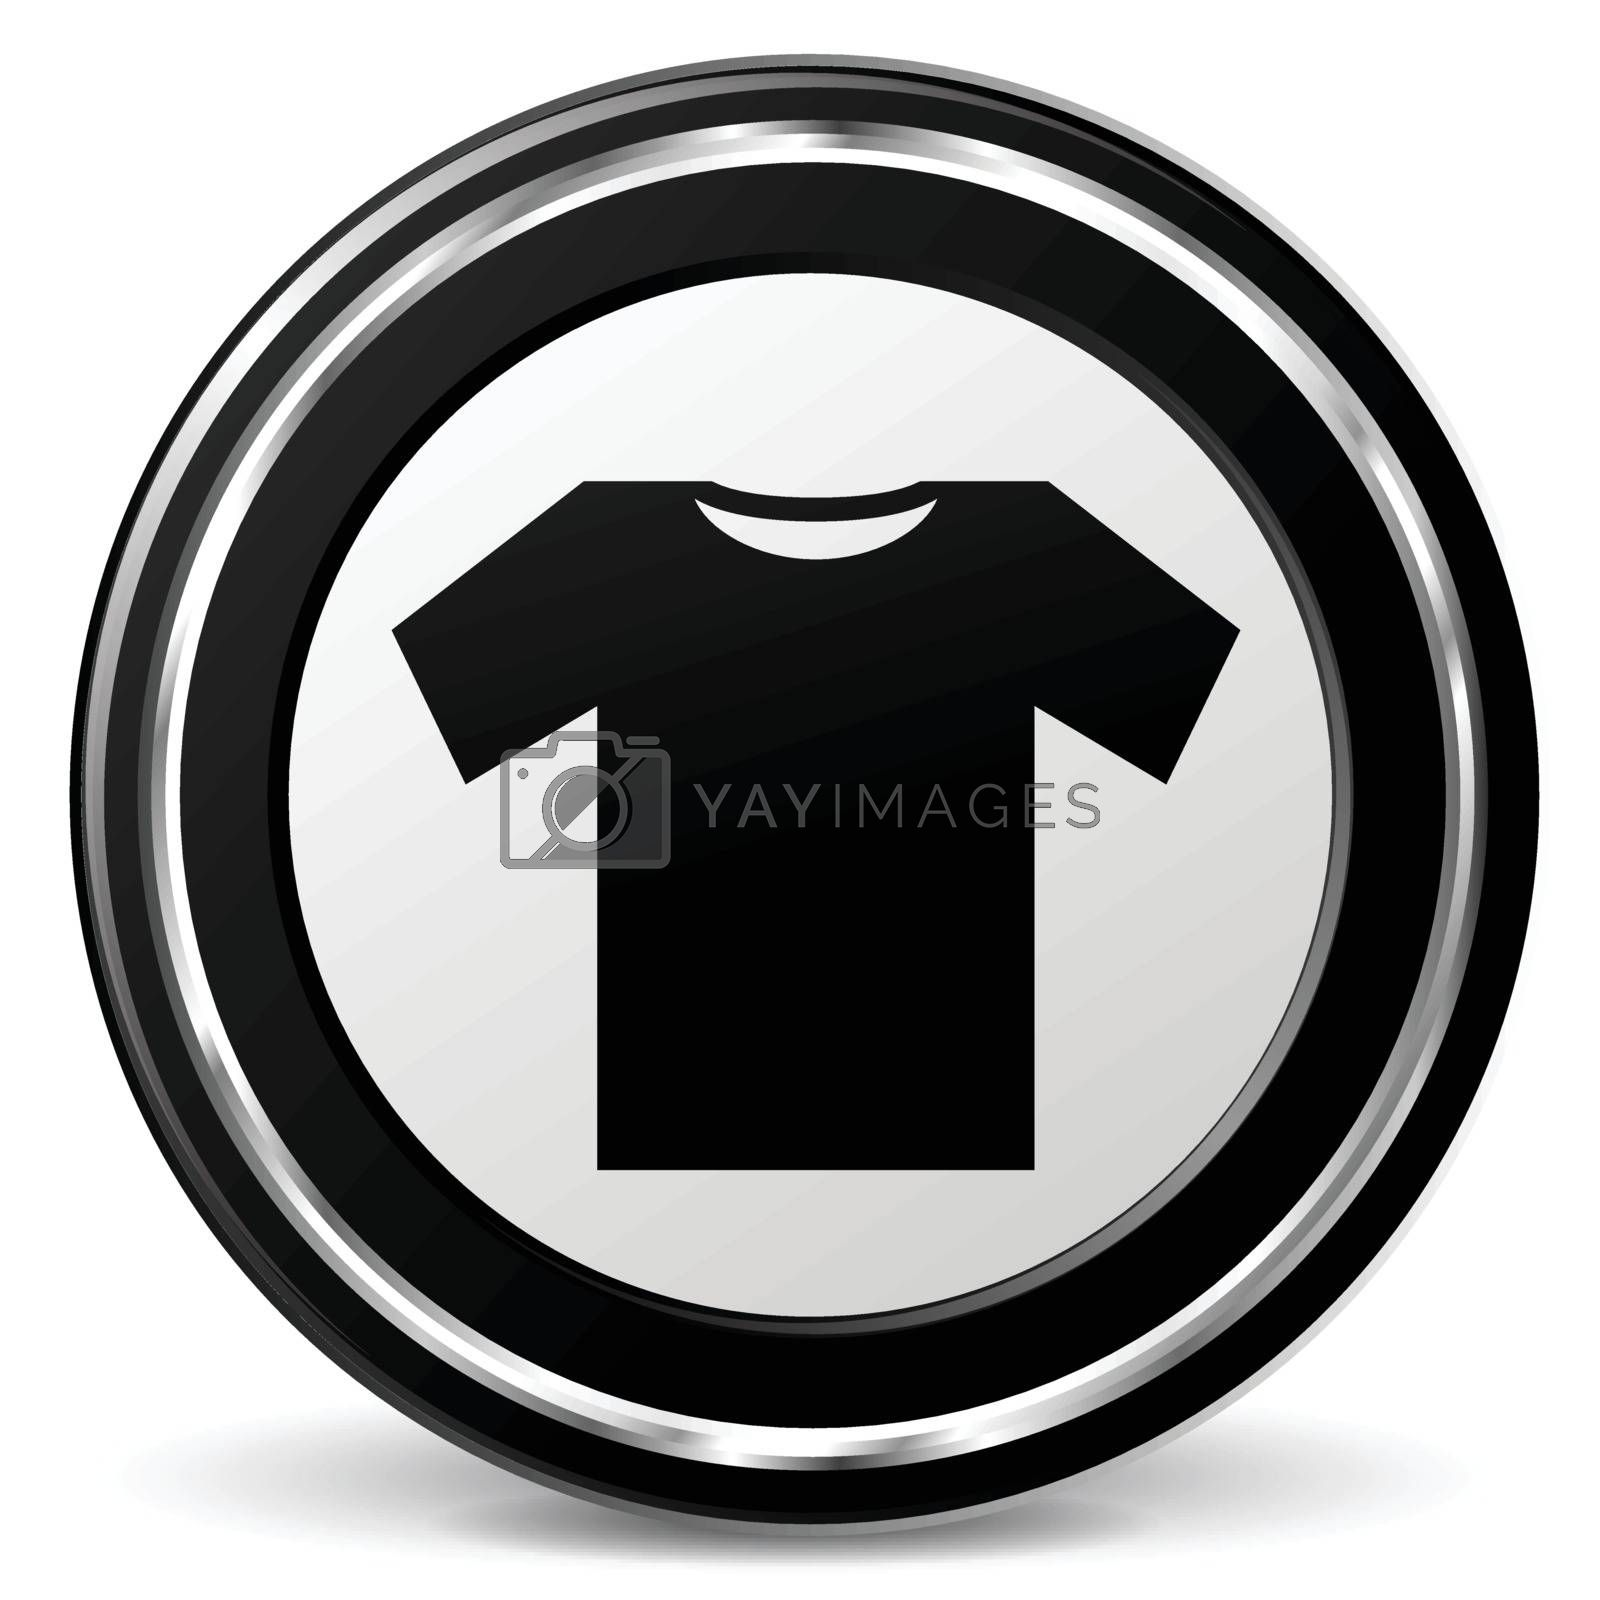 illustration of wear black and silver icon